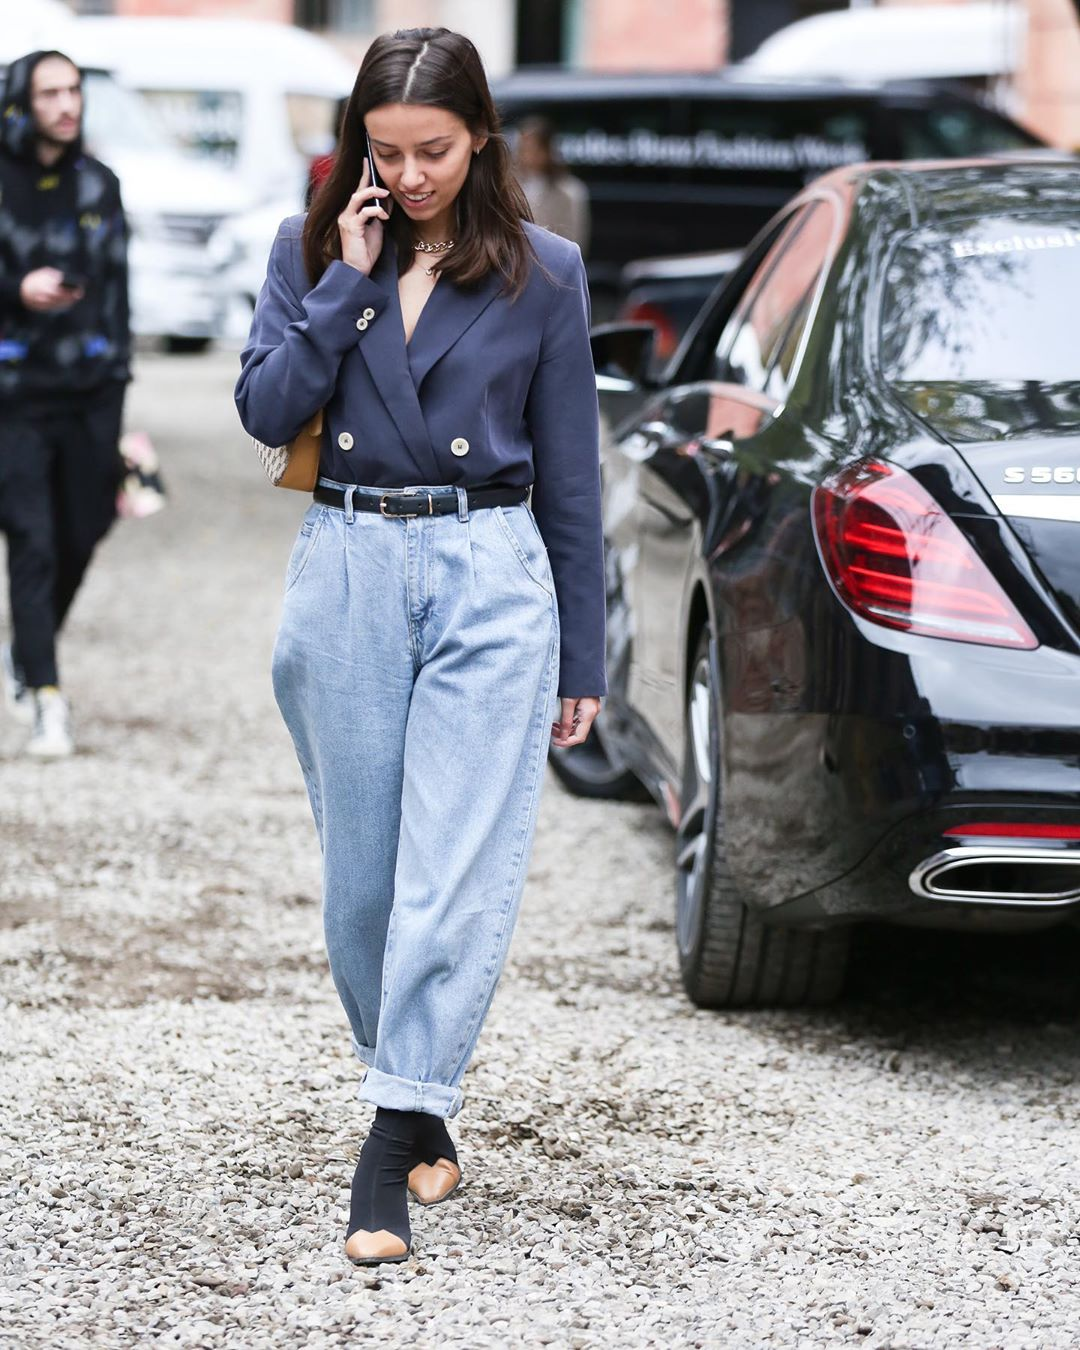 High-Waisted Mom Jeans are Still Having a Fashion Moment